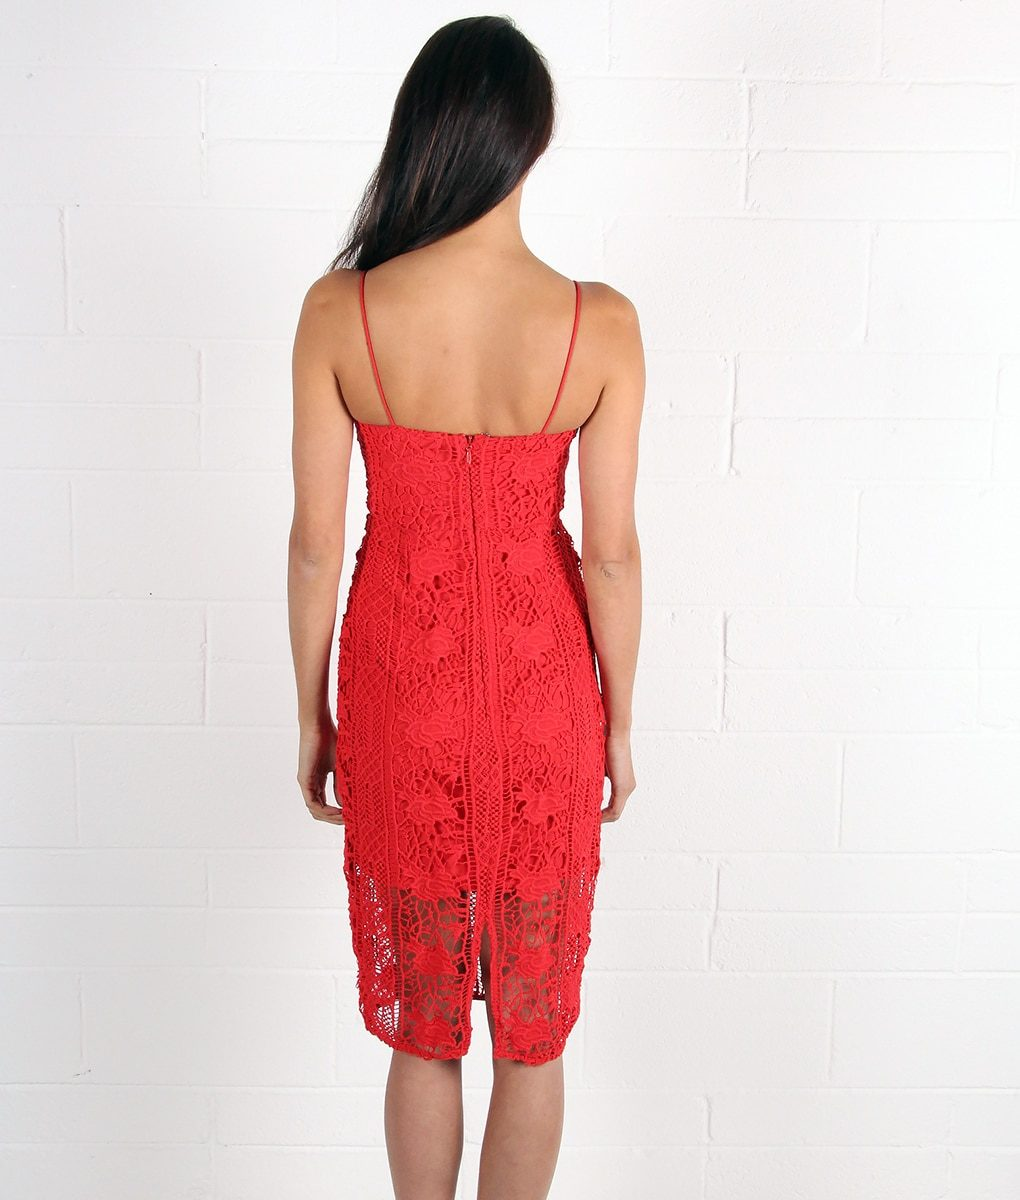 alila-red-crochet-dress-for-wedding-by-lumier-by-bariano-back